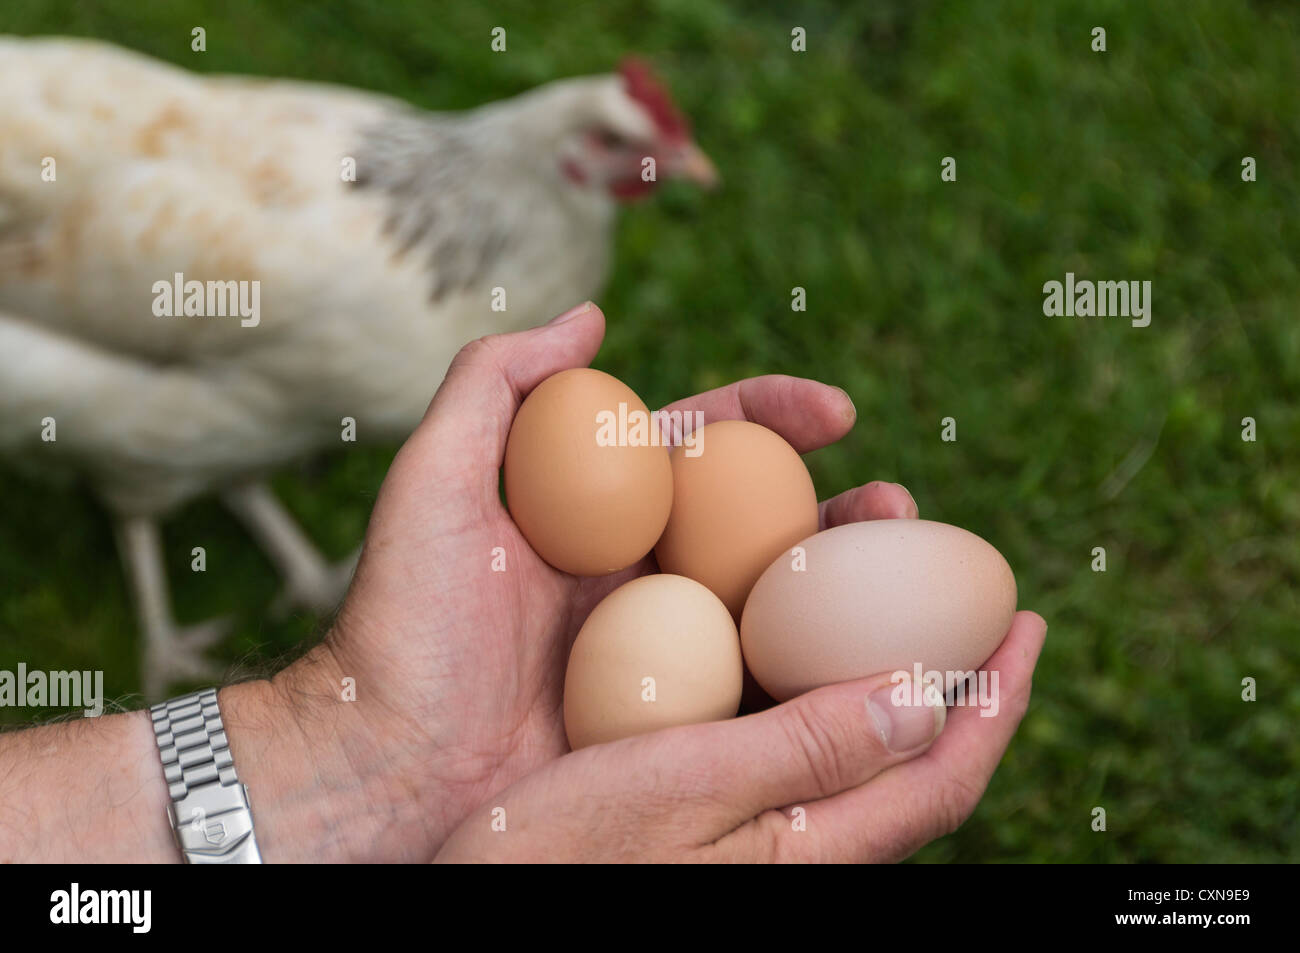 Keeping hens at home - UK. Collecting eggs including large double yolked egg. - Stock Image